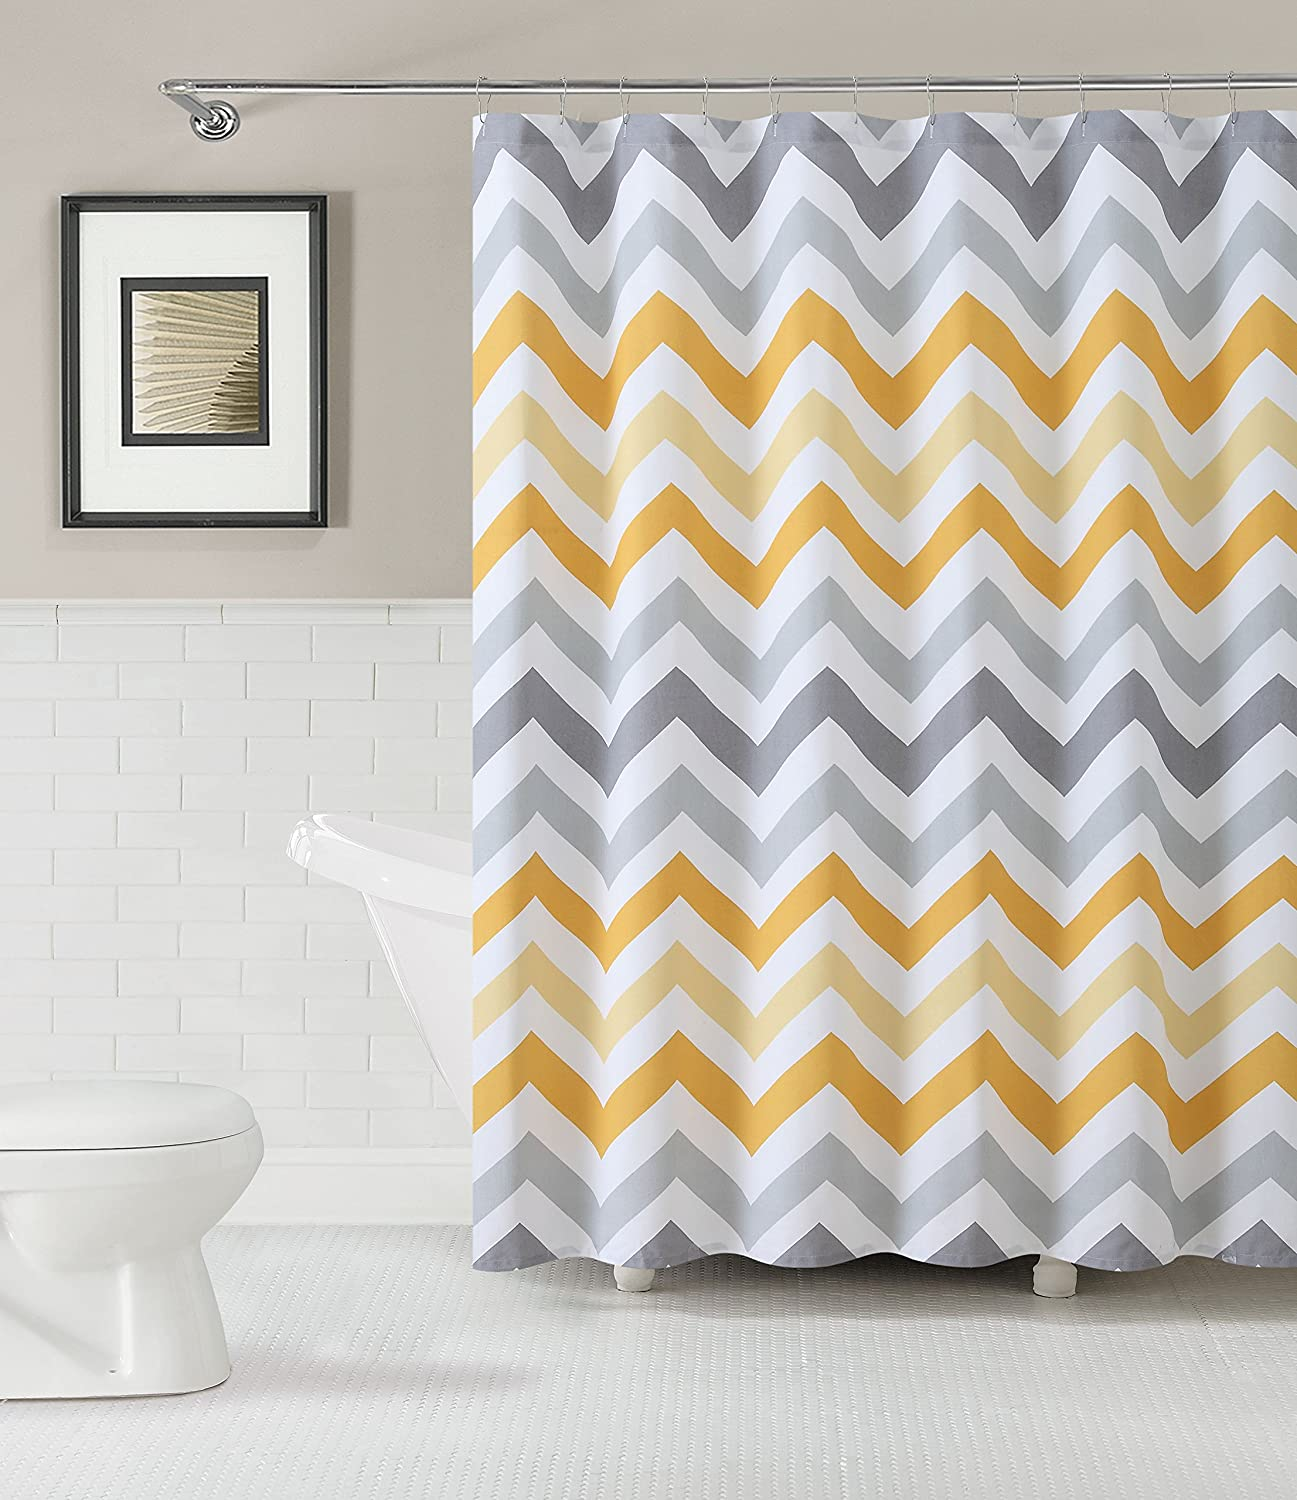 Yellow and gray chevron shower curtain - Amazon Com Goodgram Chevron Cotton Fabric Shower Curtain Assorted Colors Plum Home Kitchen